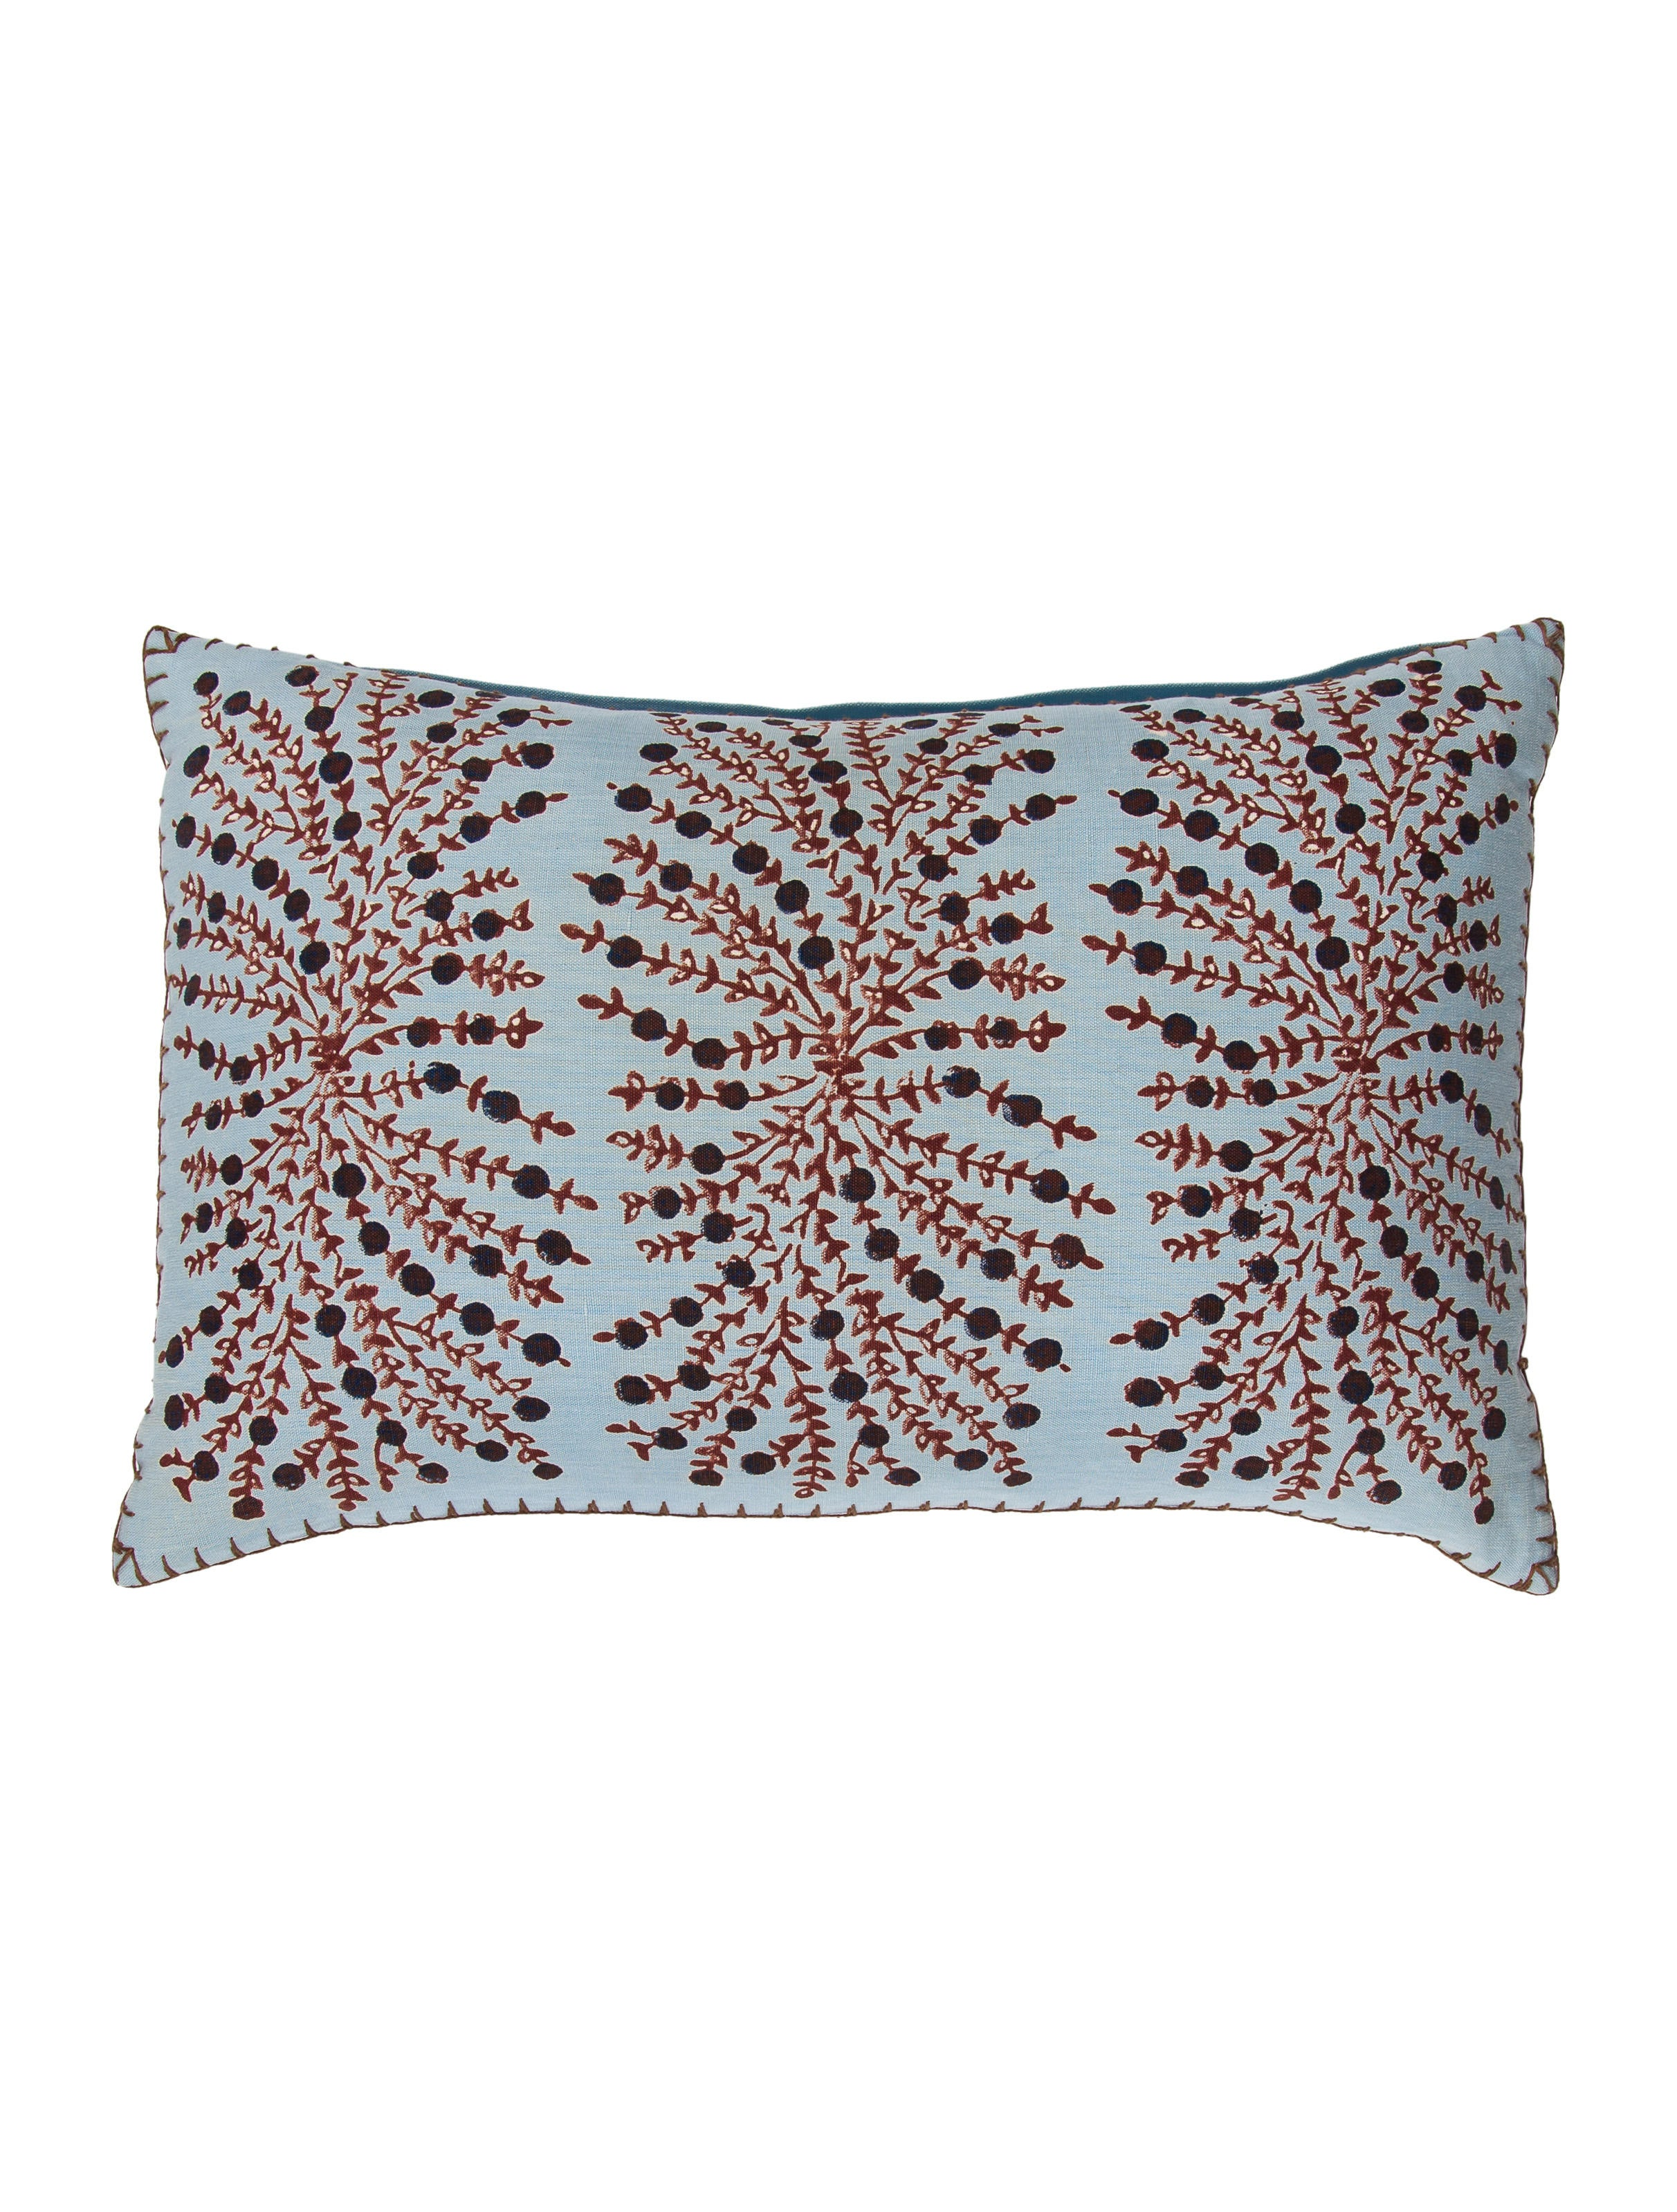 Decorative Pillows Robshaw : John Robshaw Decorative Throw Pillow - Bedding And Bath - JROBS20076 The RealReal